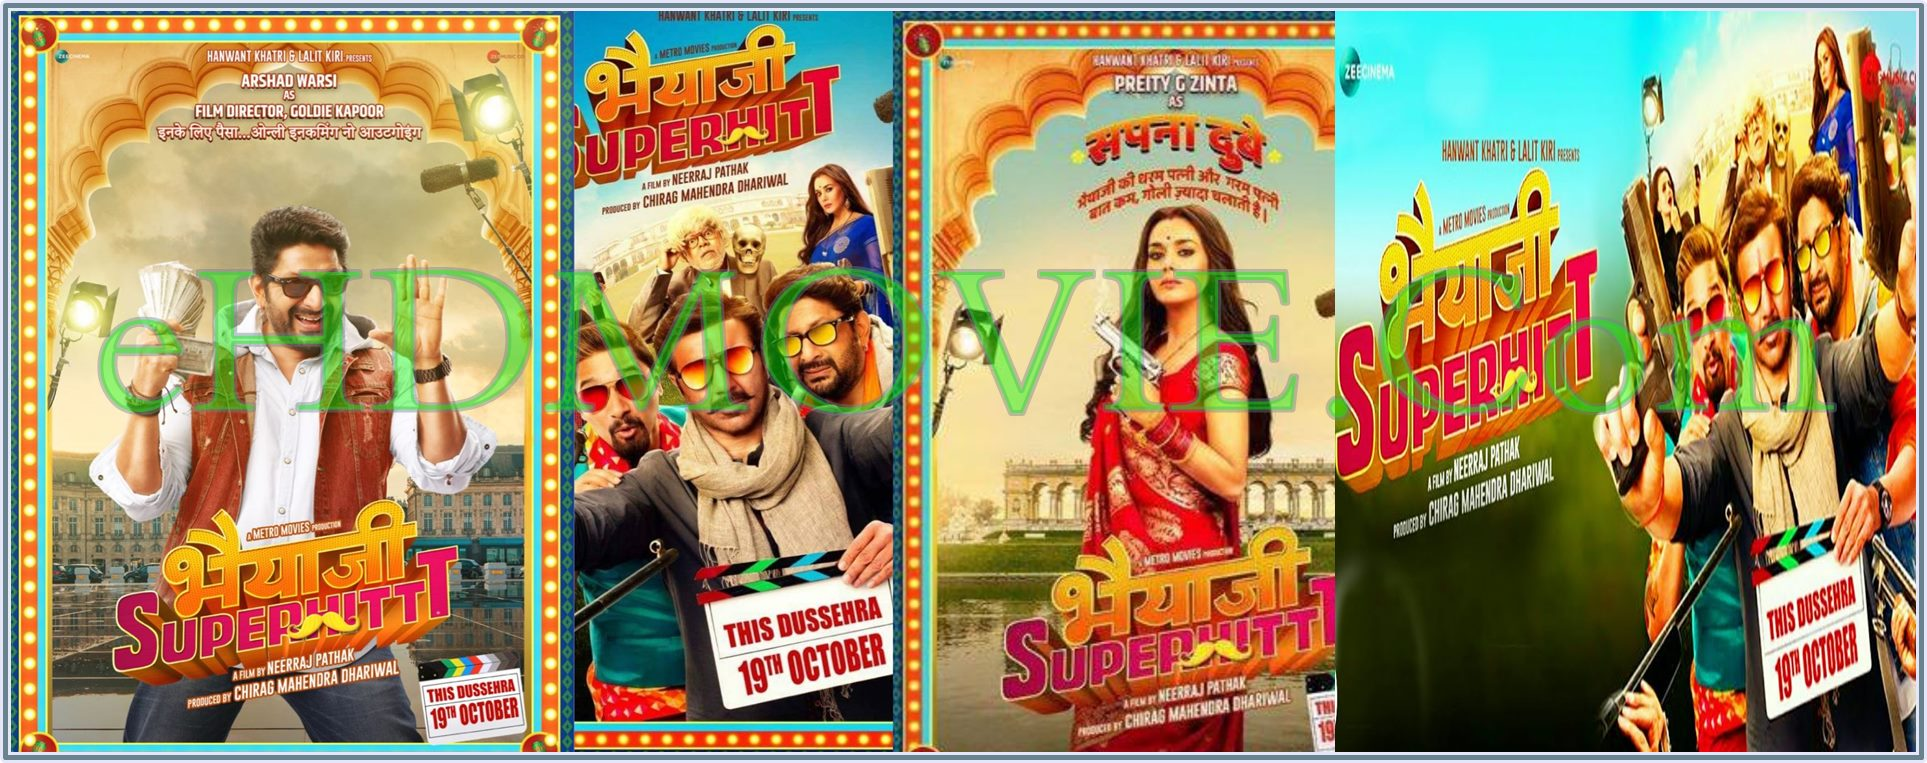 Bhaiaji Superhit 2018 Full Movie Hindi 1080p – 720p – HEVC – 480p ORG WEB-DL 400MB – 600MB – 1GB – 2GB ESubs Free Download